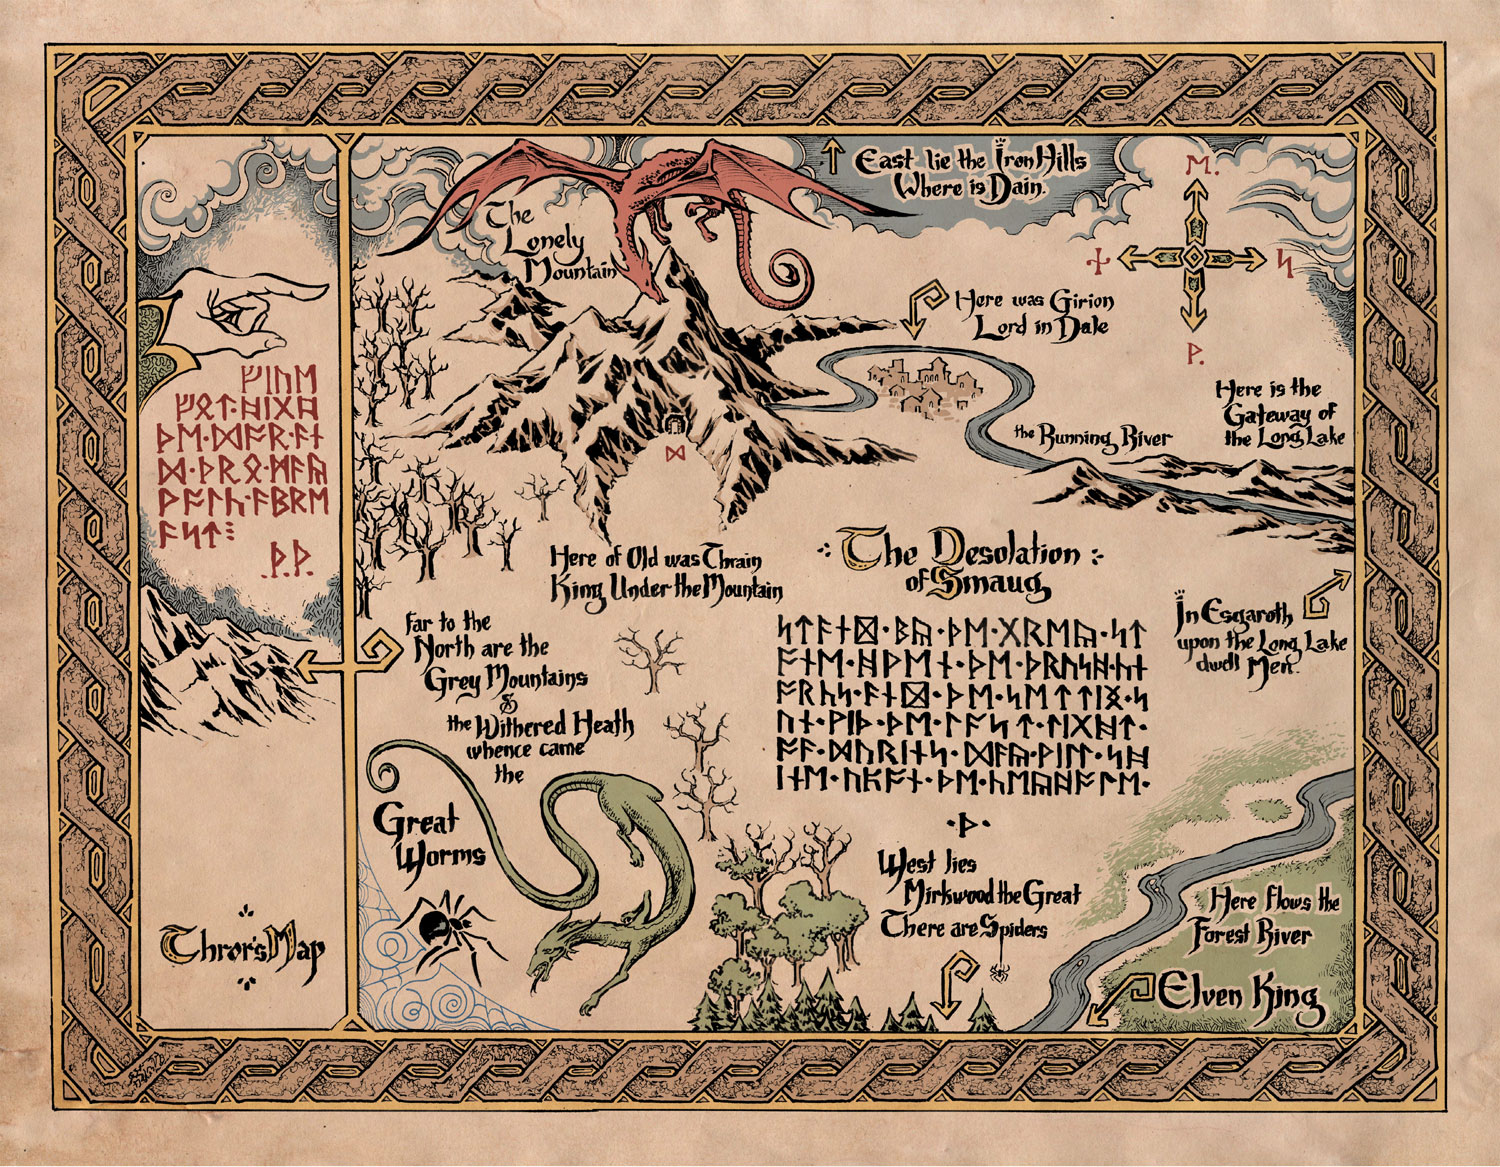 Image  Mapwebjpg  The One Wiki to Rule Them All  FANDOM